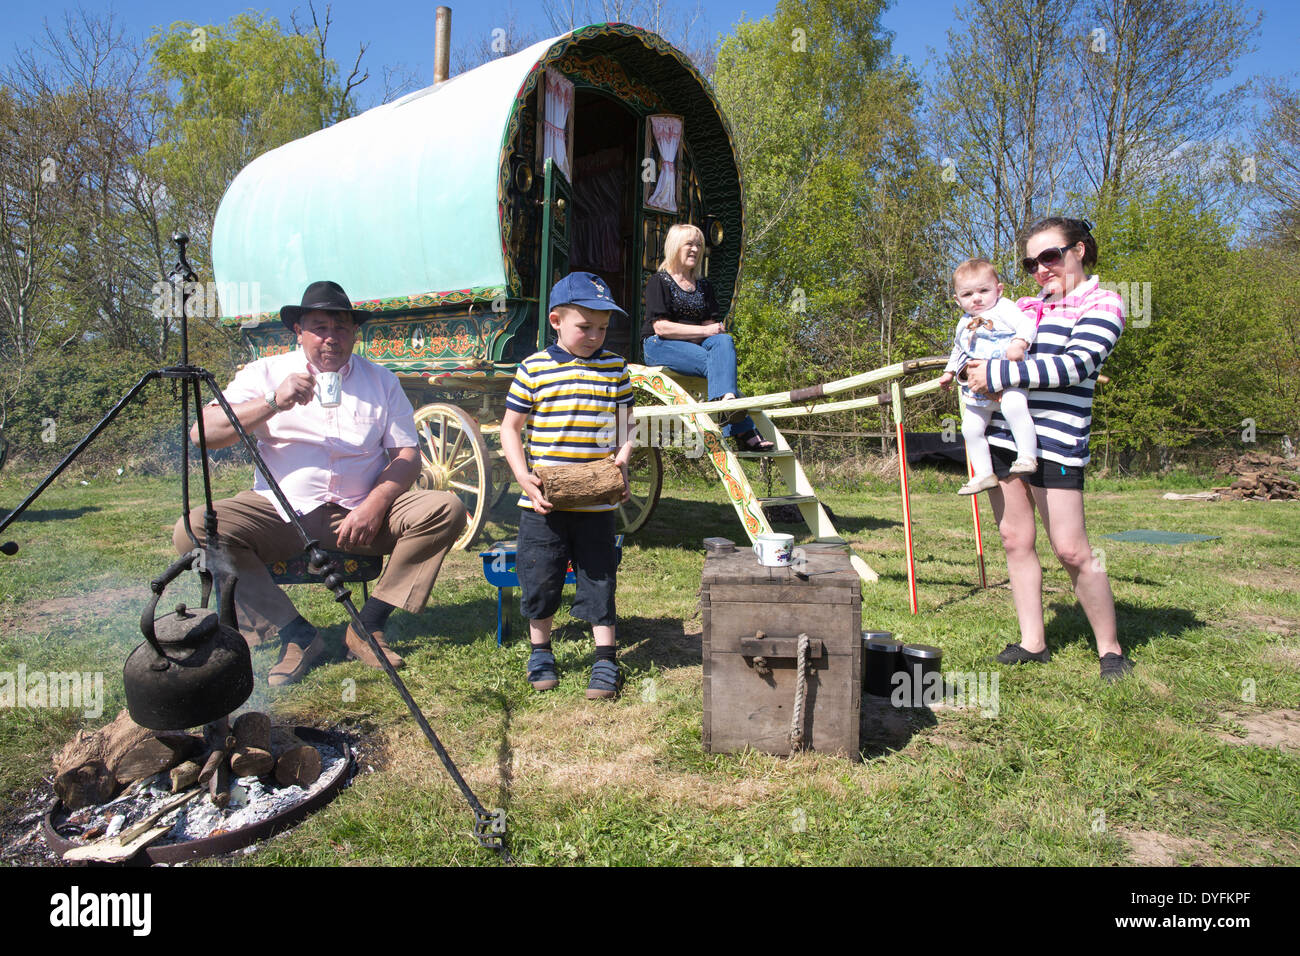 Romany Gypsies outside their Vardo, Gypsy and Traveller site, West Sussex, England, UK - Stock Image